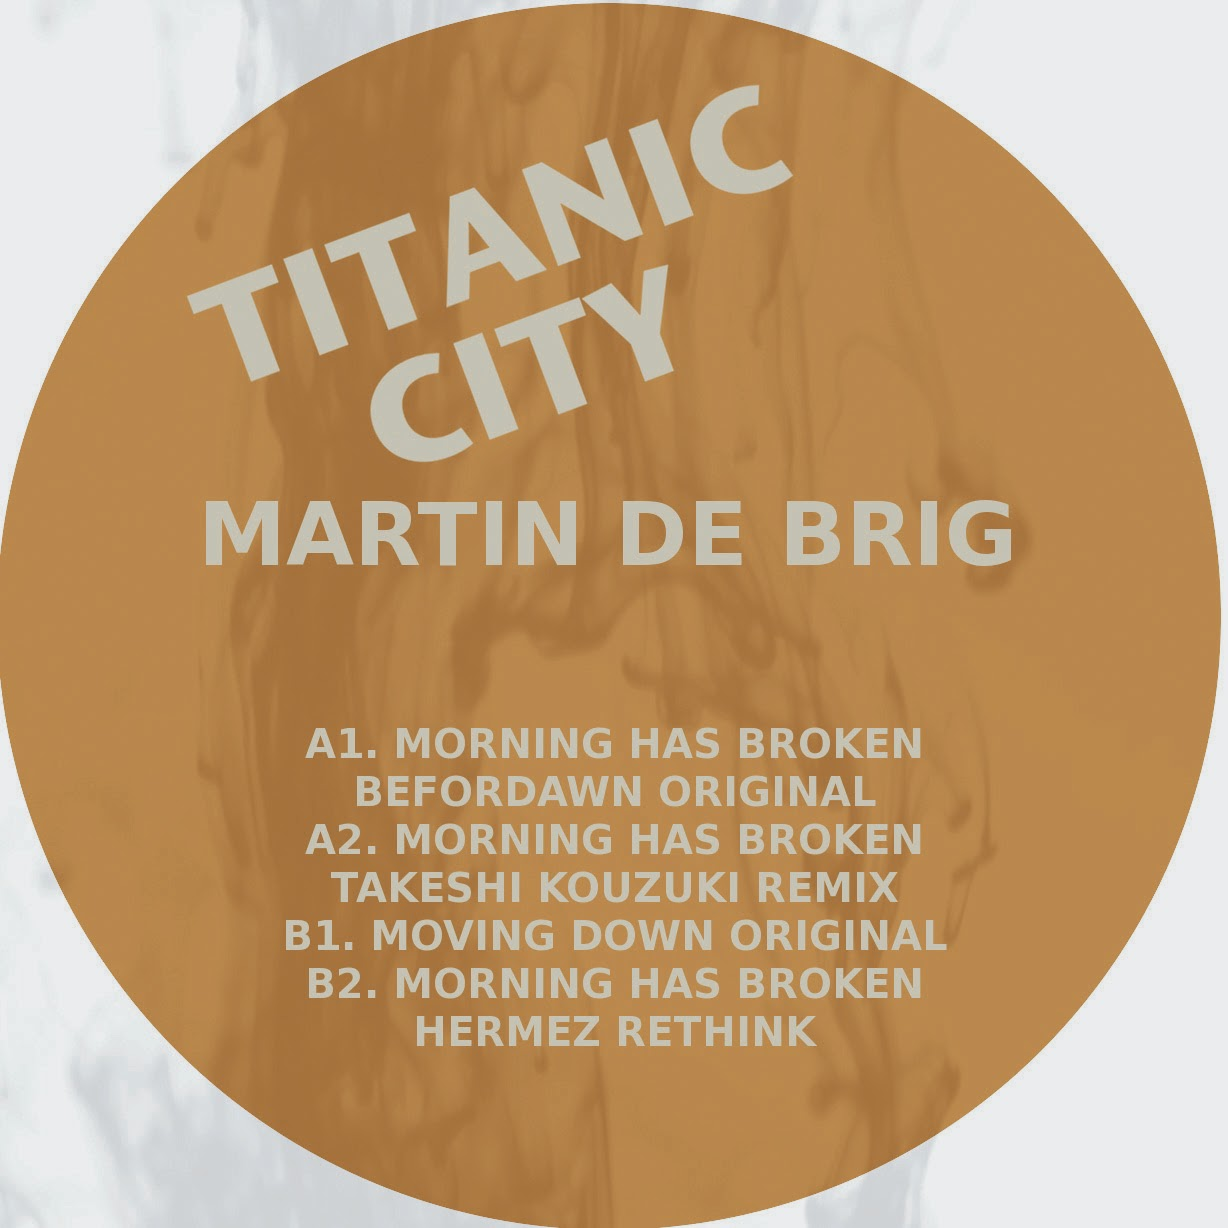 Discosafari - MARTIN DE BRIG - Morning has Broken - Titanic City